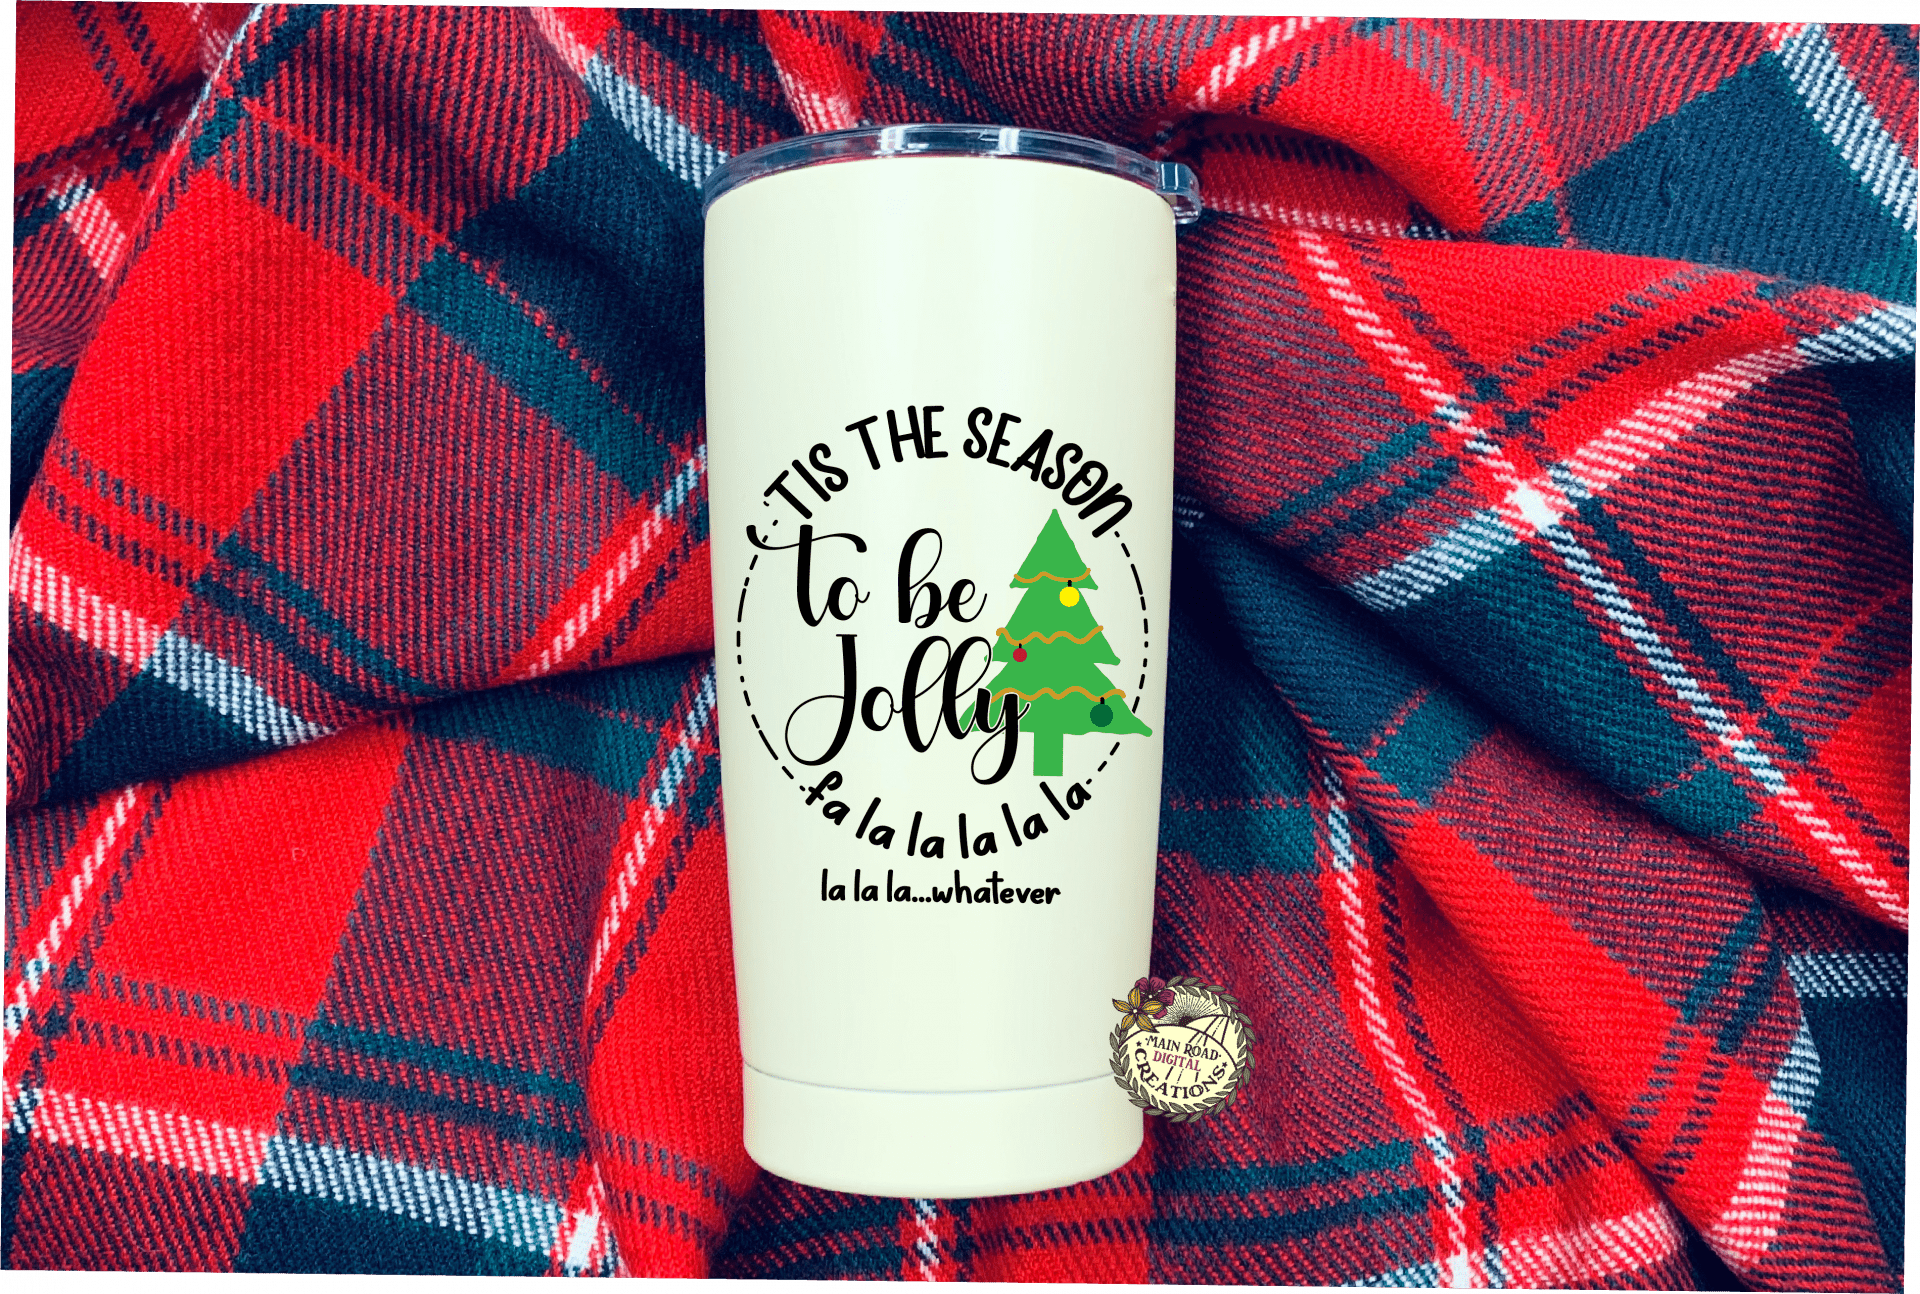 funny Christmas designs, Christmas quote, Christmas design for cups, Funny Christmas designs for couples, Christmas design for men, funny couple designs for Christmas, Christmas svg for couples free, free Christmas SVG, tis the season to be jolly free SVG